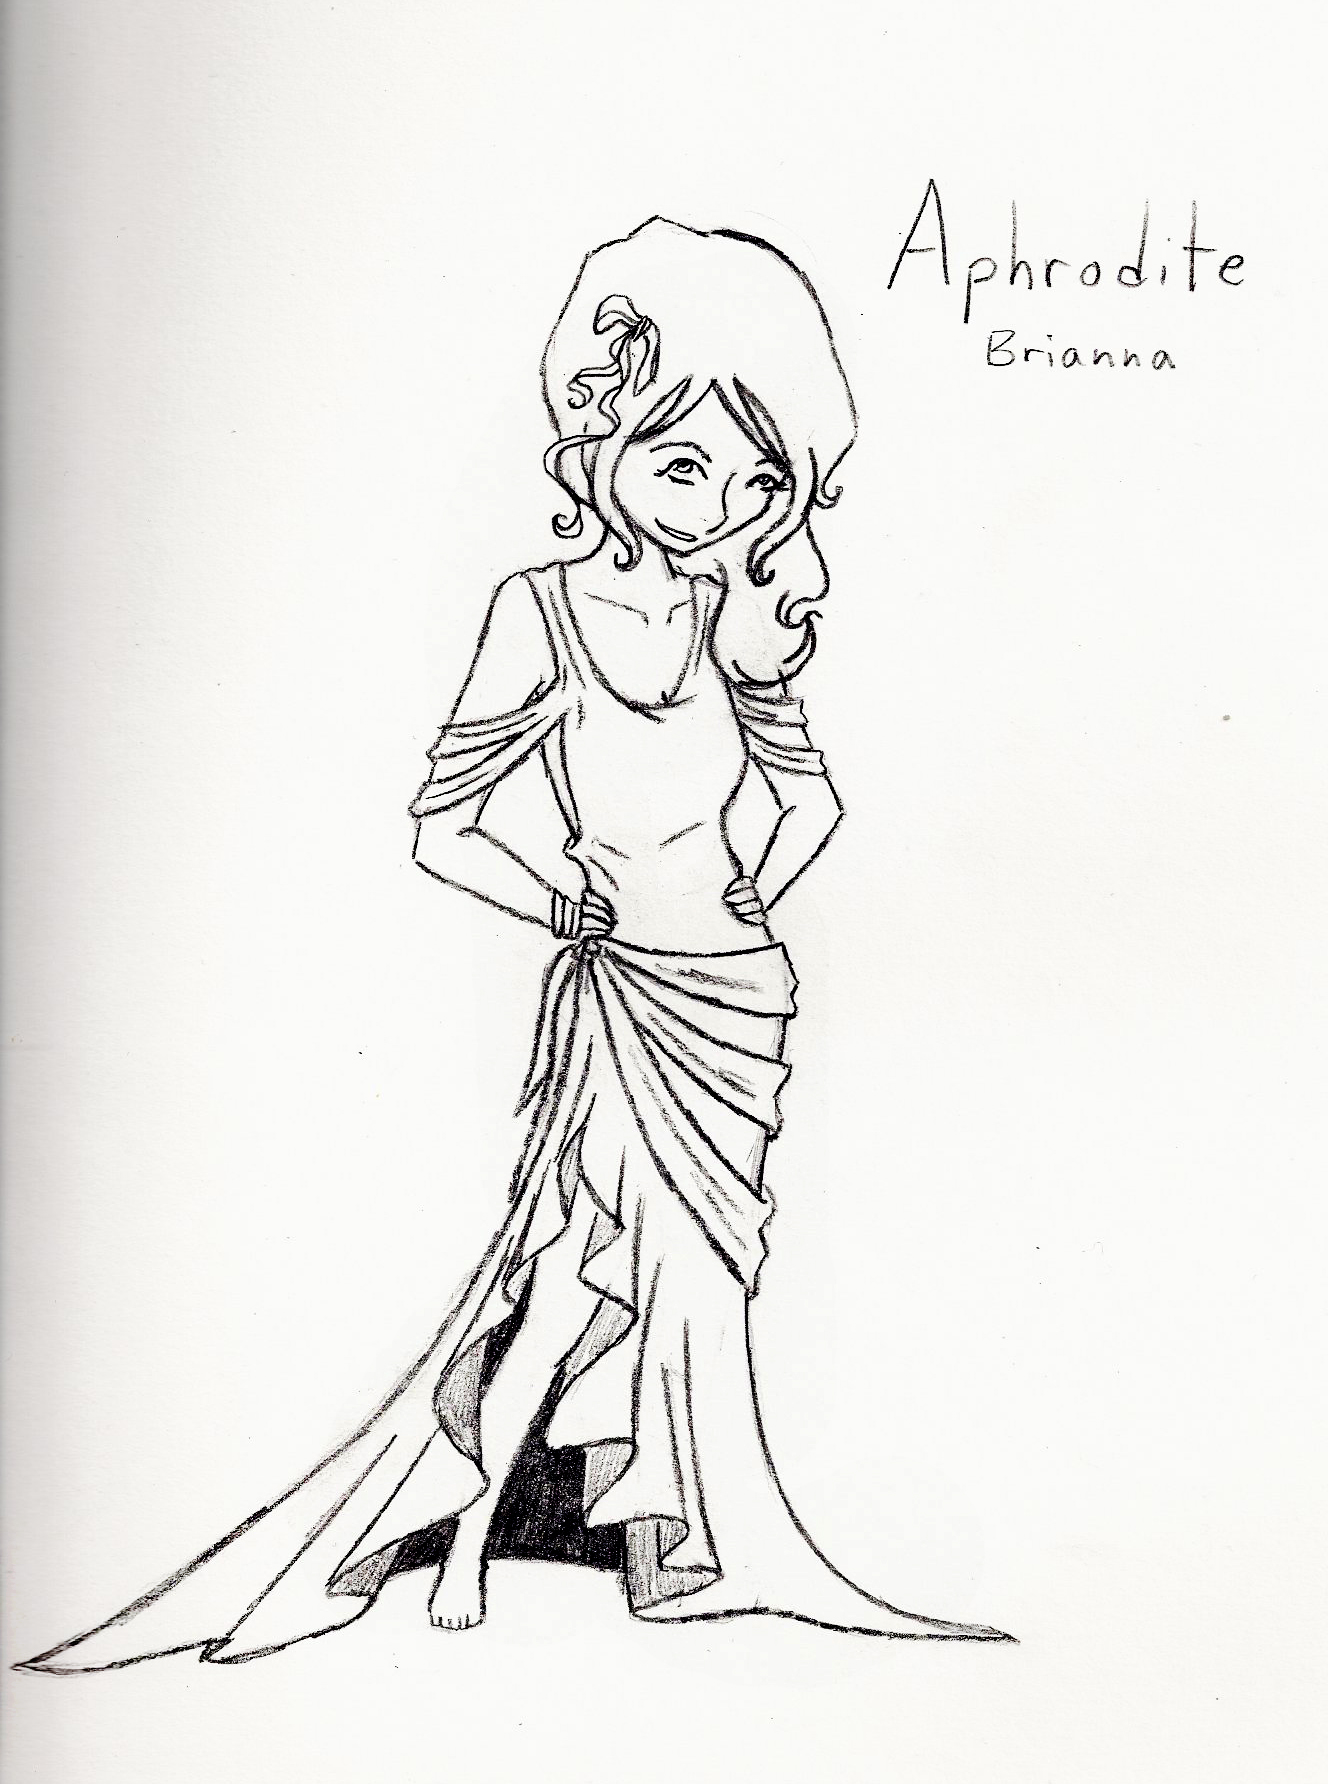 Uncategorized Drawings Of Aphrodite aphrodite sketch by smartallecsquirrel on deviantart smartallecsquirrel